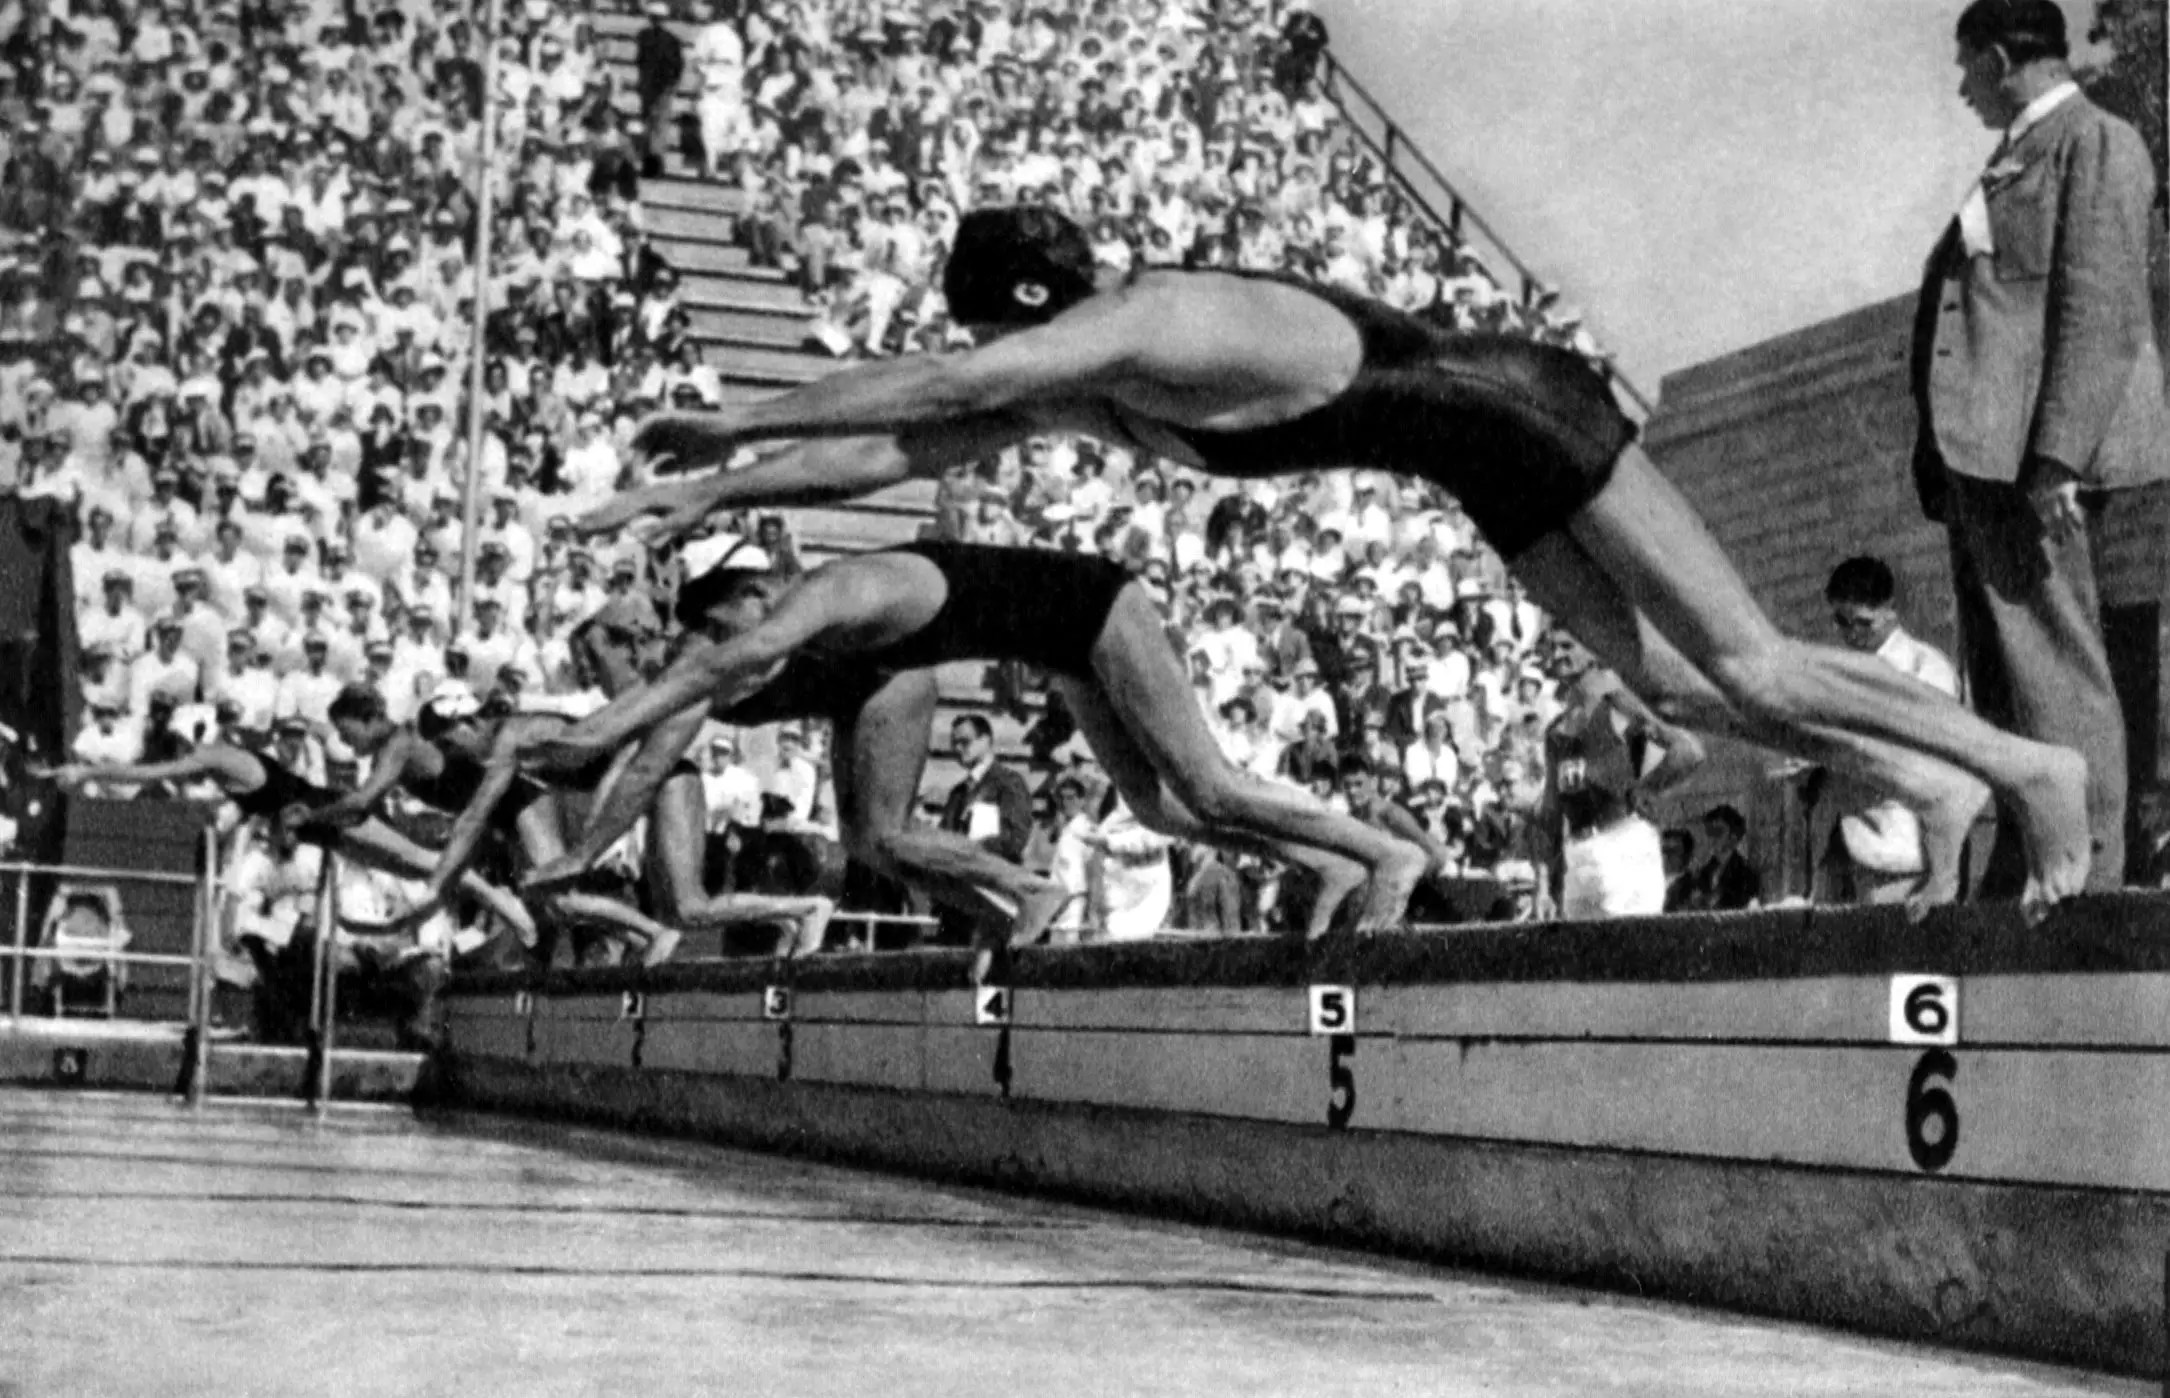 Los Angeles, 1932: As the only contender to put forward a bid for the 1932 Olympics, the games moved to Los Angeles. They were hosted during the Great Depression, meaning many nations and athletes were unable to afford the trip to the US.